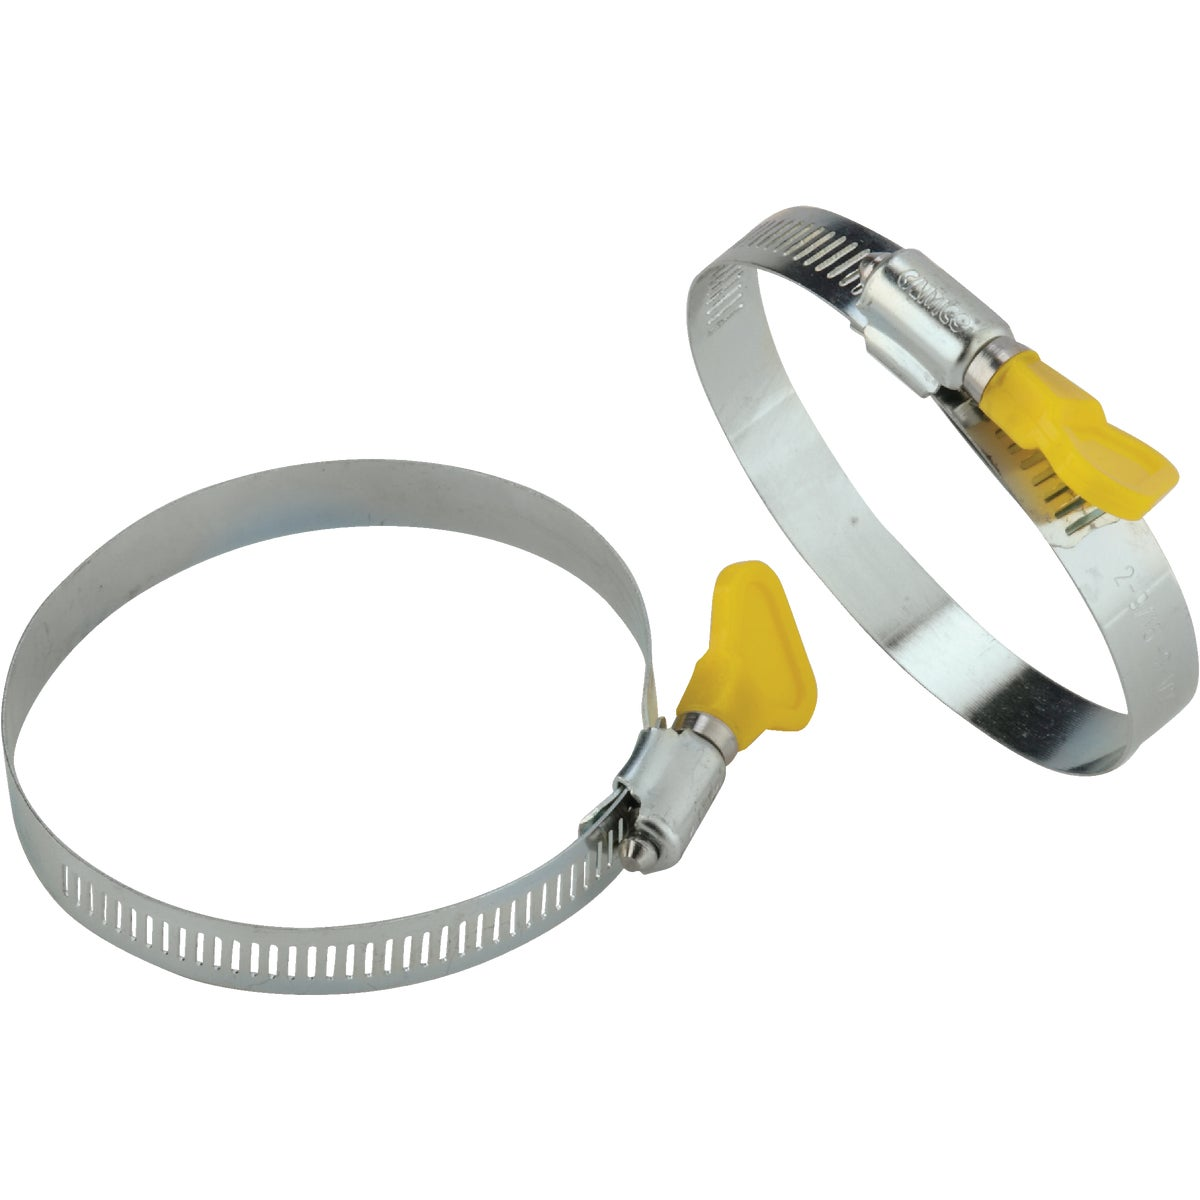 2PK RV SEWER HOSE CLAMPS